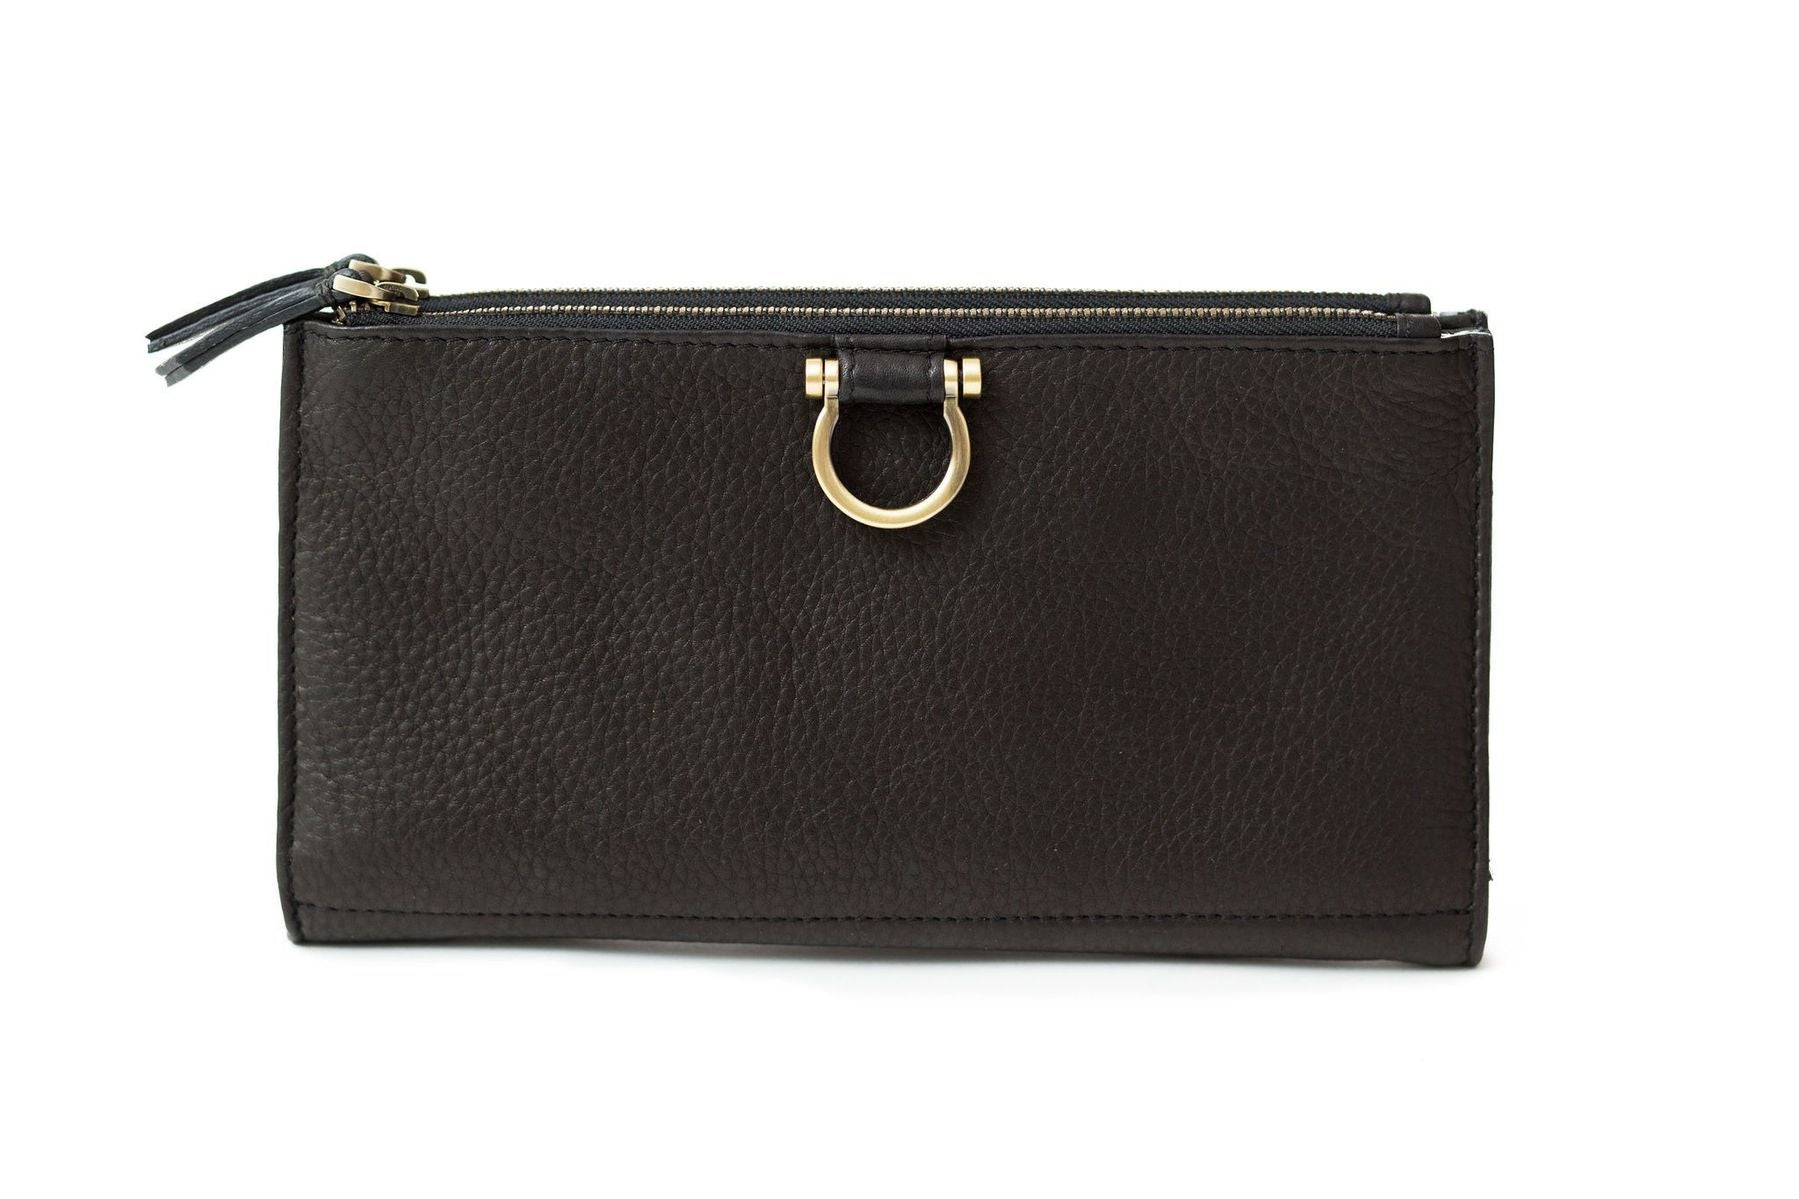 Parker Leather Wristlet Wallet (Black Raw Leather)